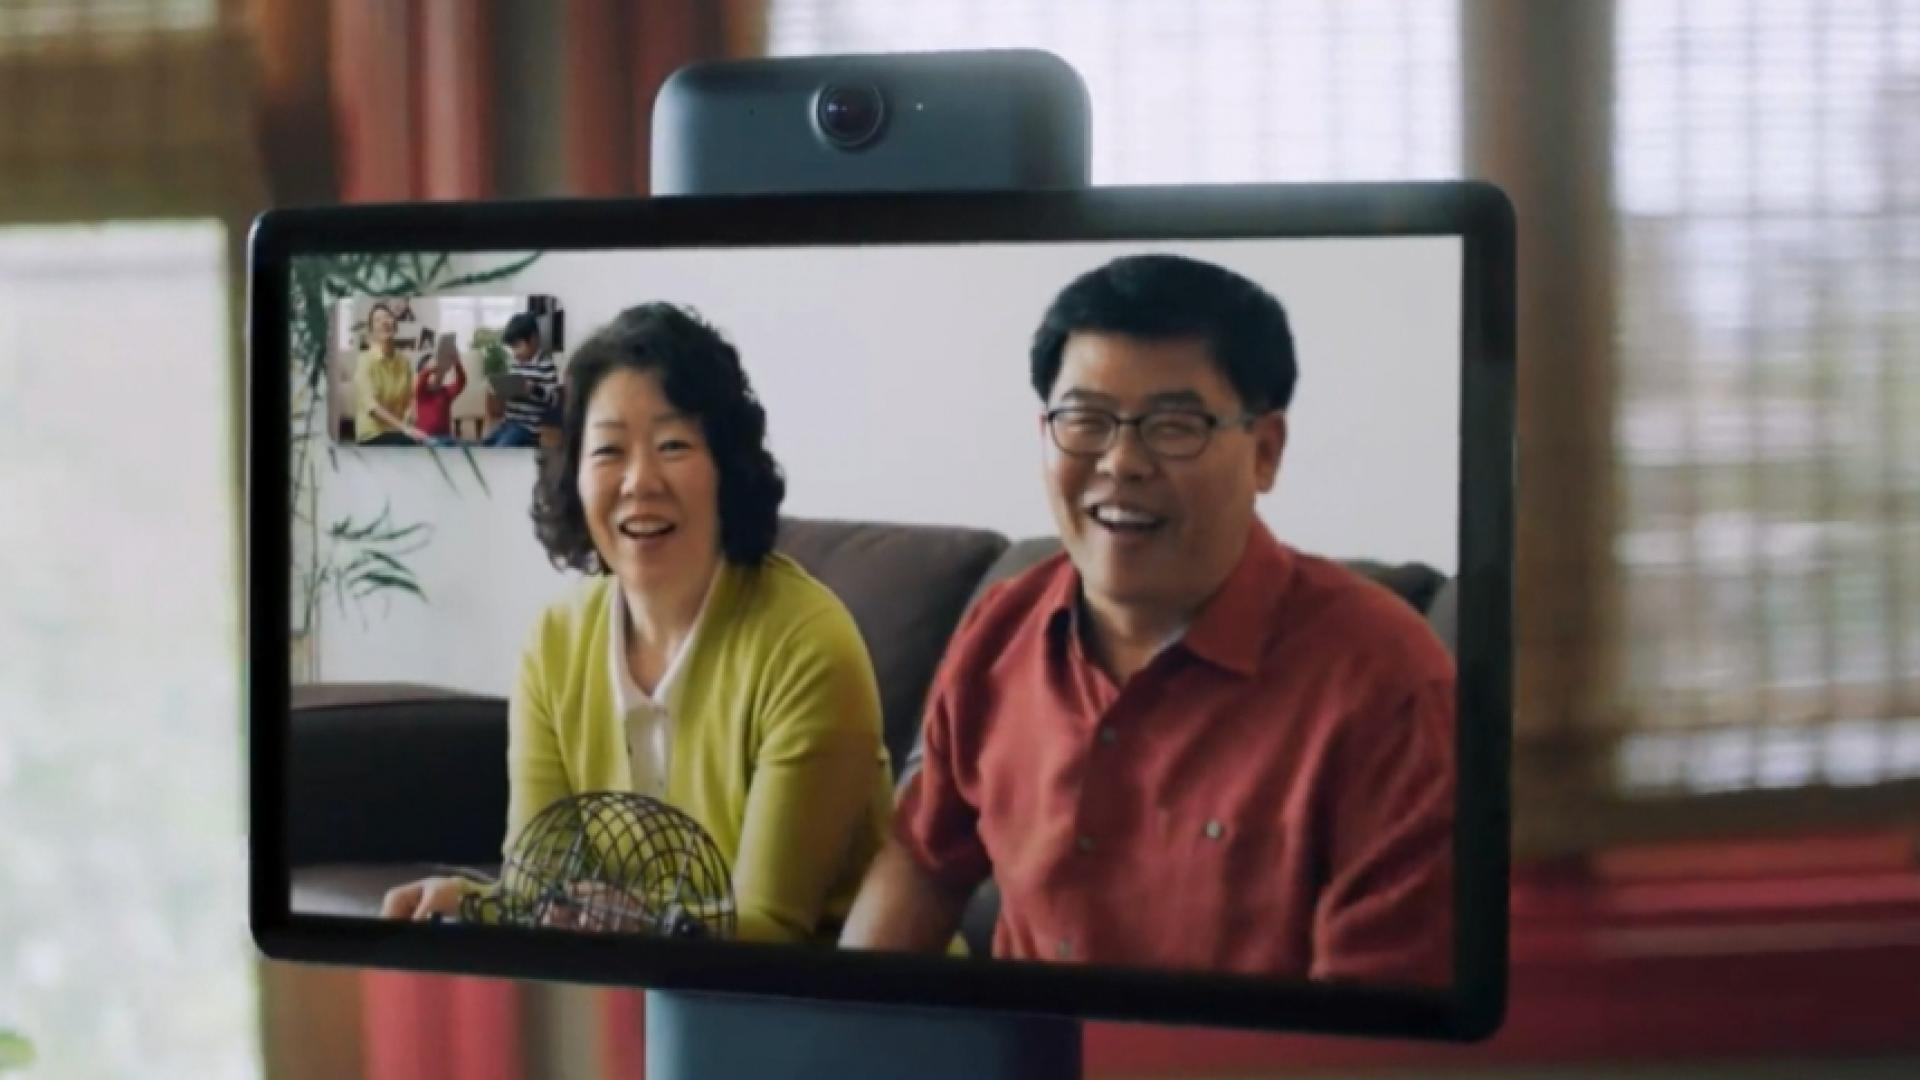 Facebook launches home video chat